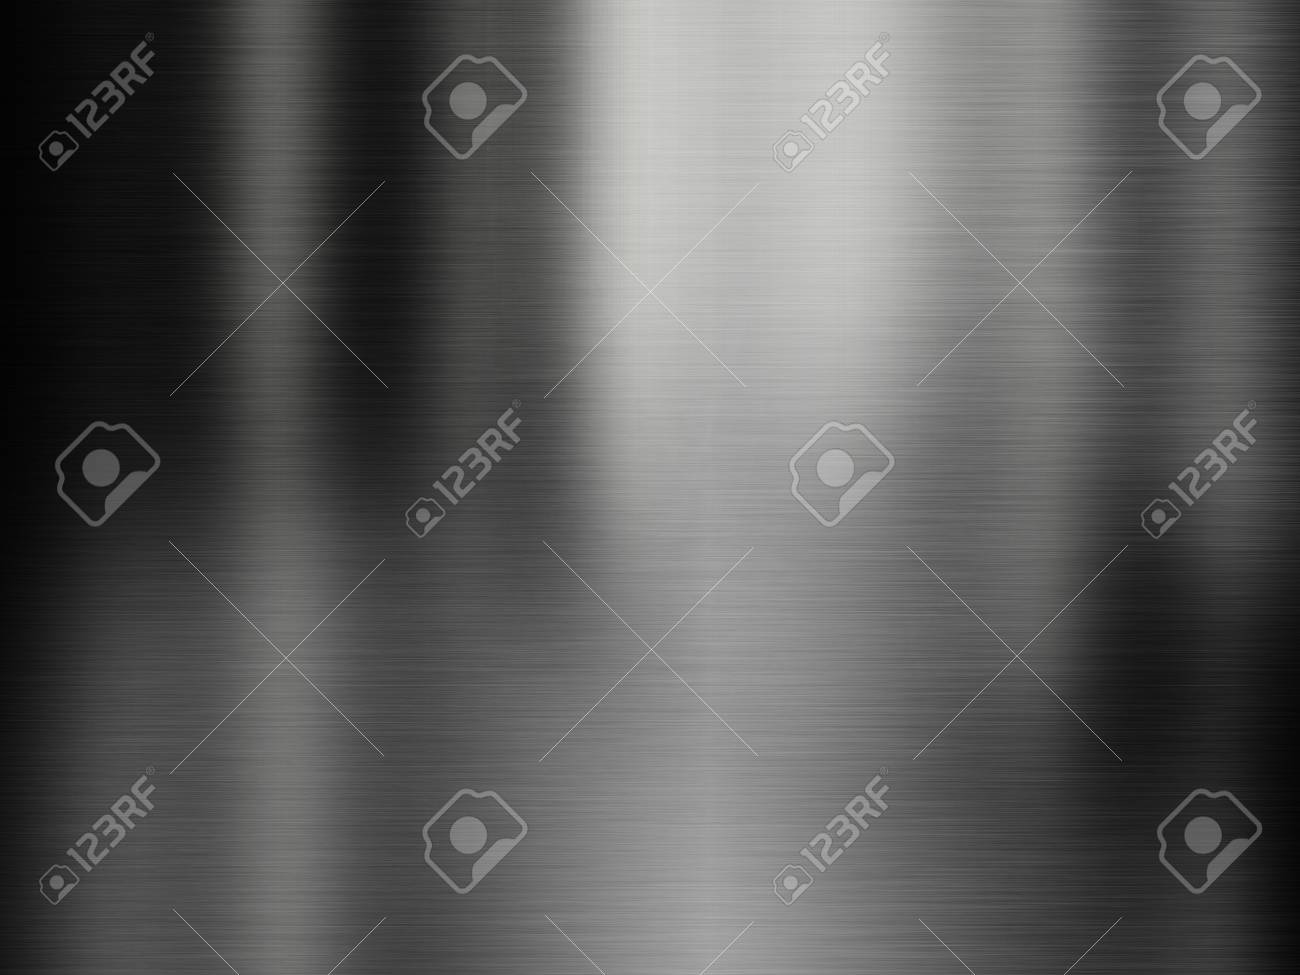 Stainless steel texture or metal texture background Banque d'images - 75076732